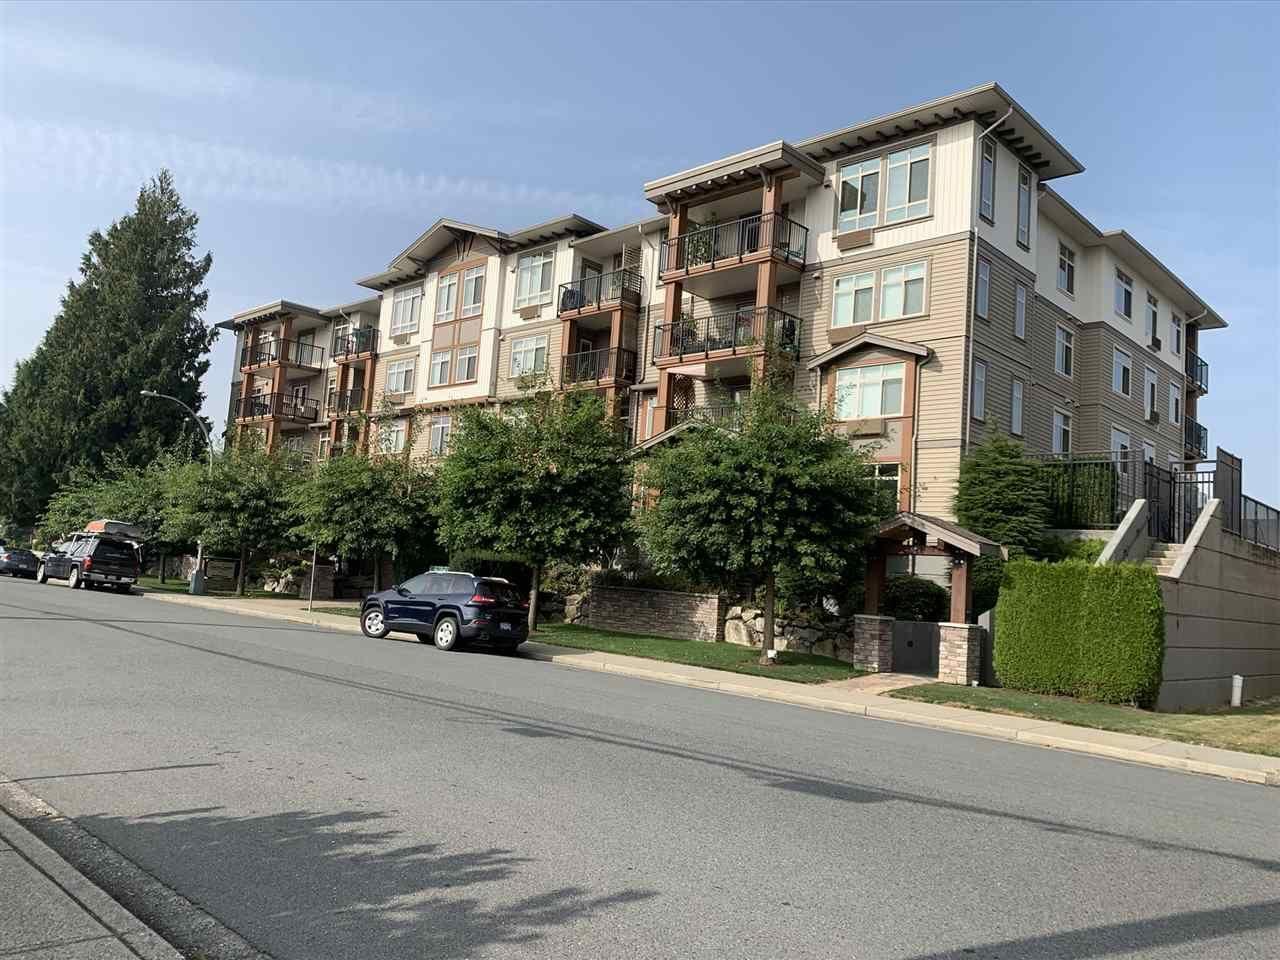 Main Photo: 407 45665 PATTEN Avenue in Chilliwack: Chilliwack W Young-Well Condo for sale : MLS®# R2502604